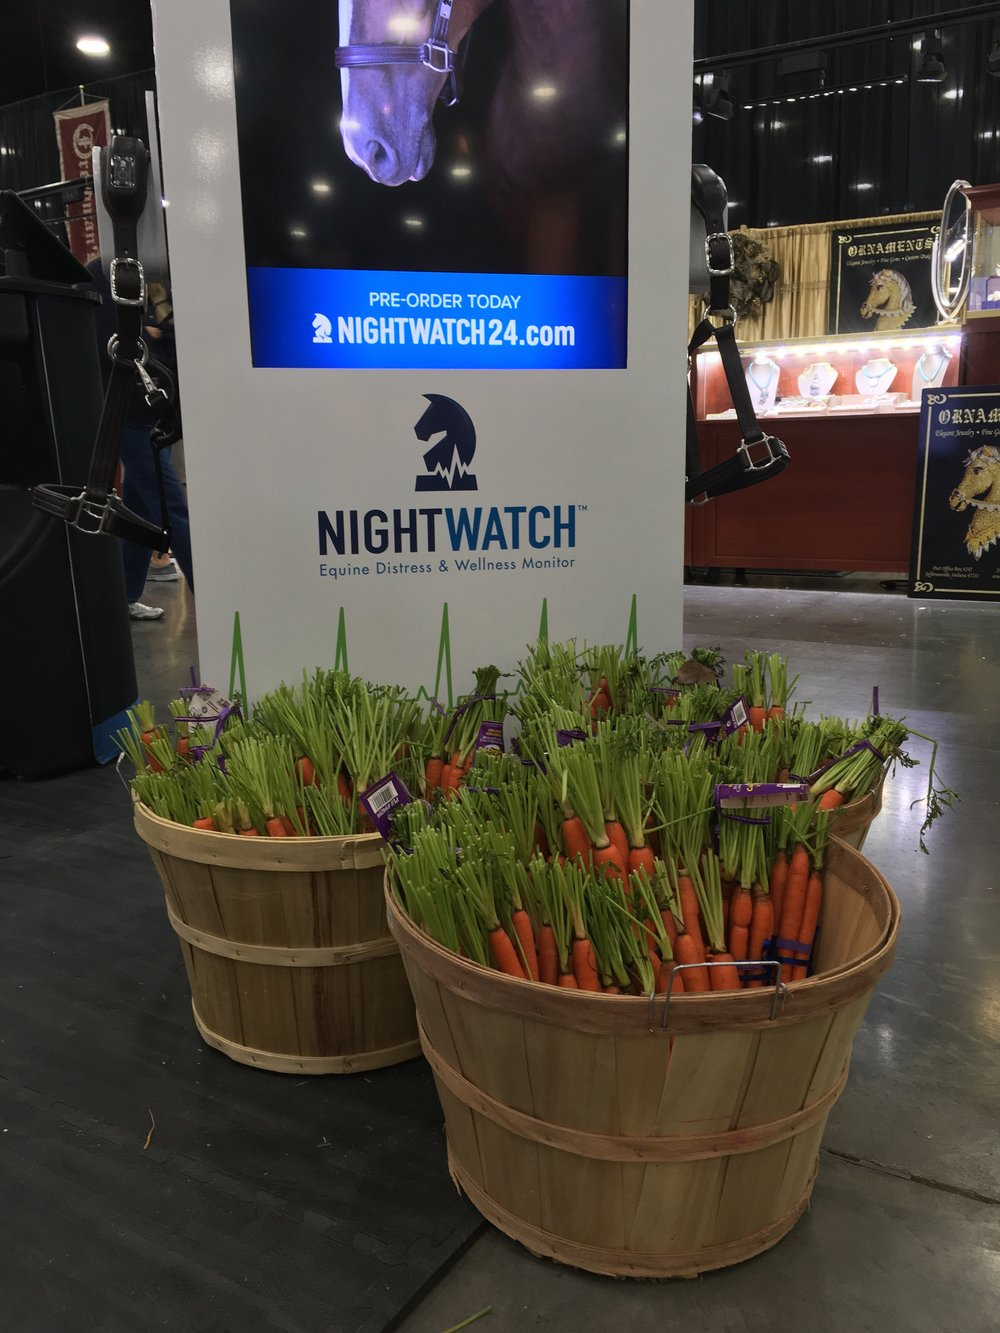 Our NIGHTWATCH® handed out carrots to competitors and their horses at the World's Championship Horse Show in Louisville, Kentucky.